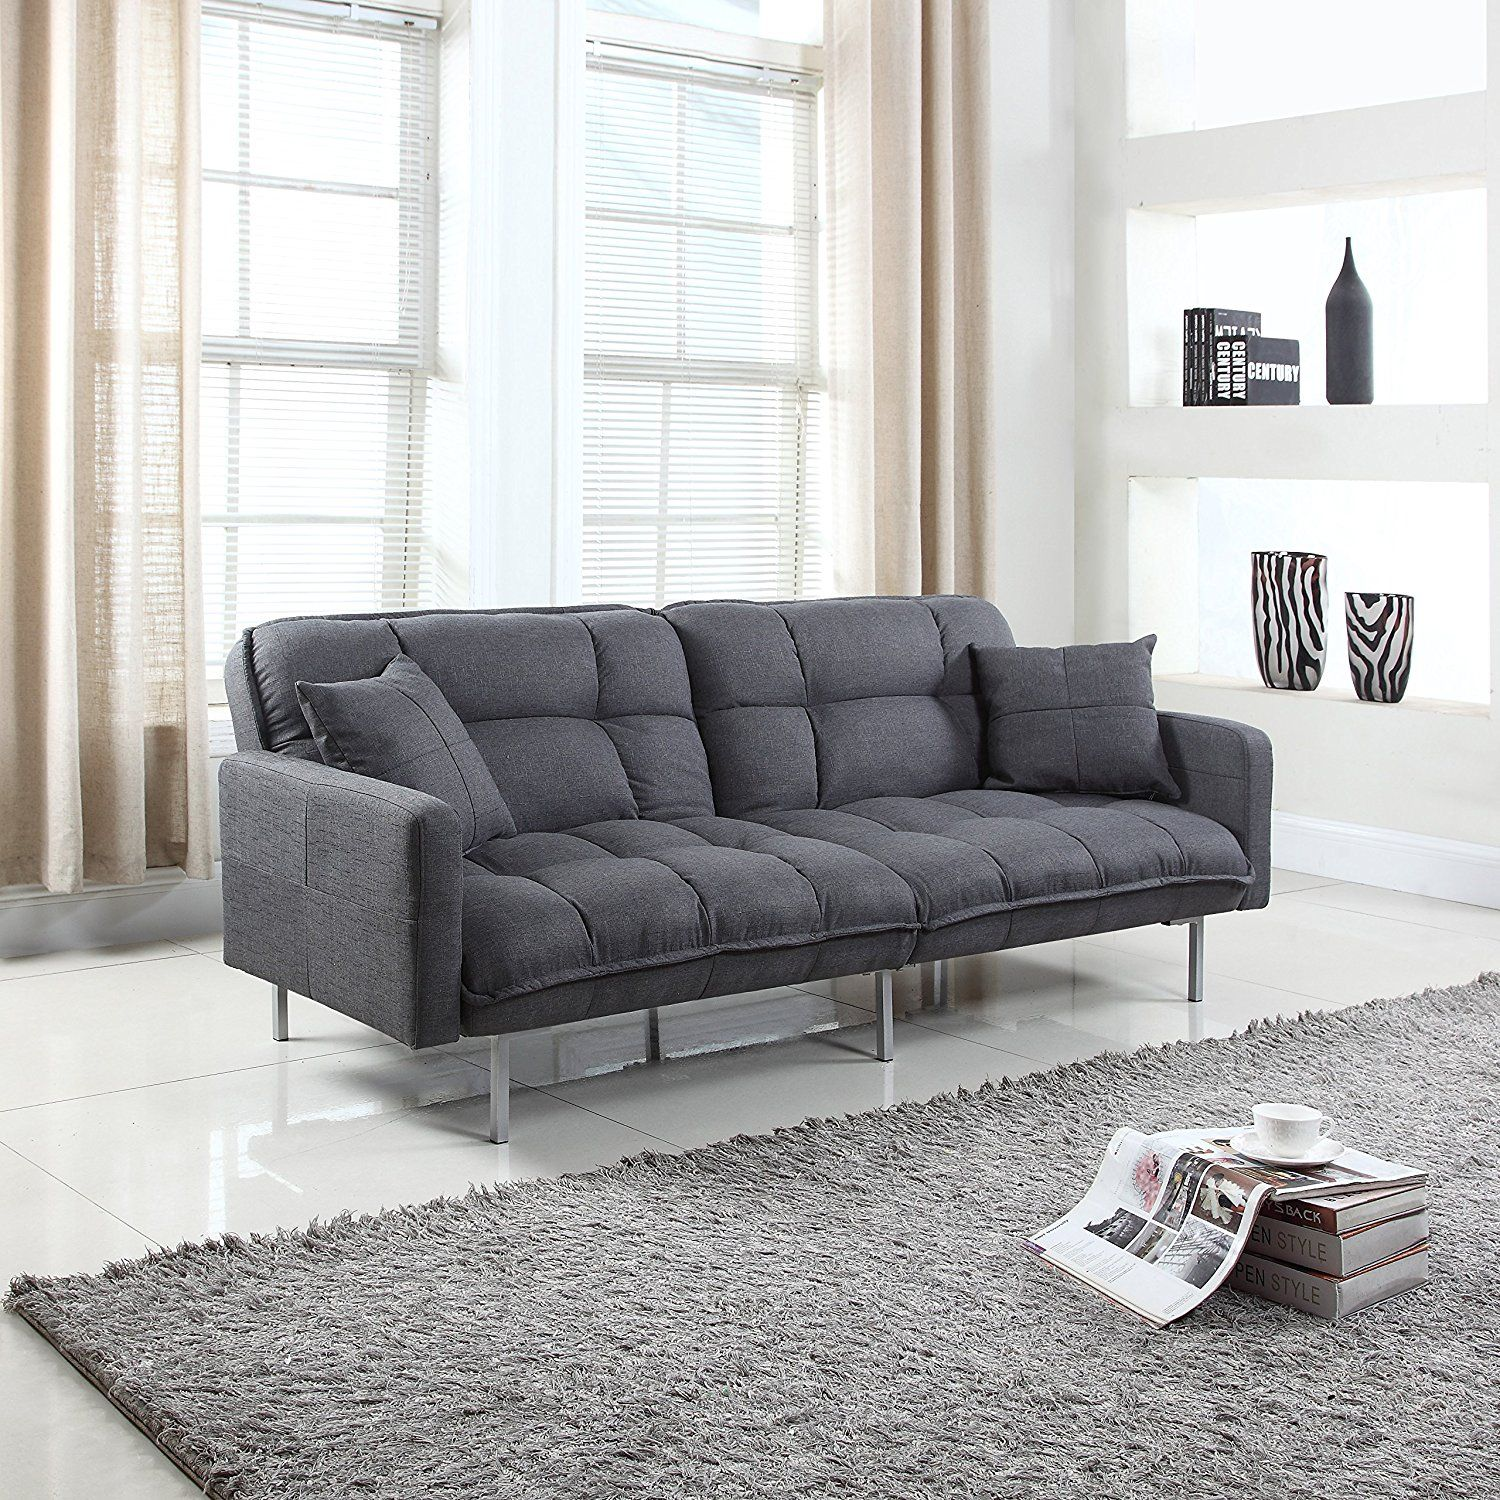 What Is The Best Sleeper Sofa And Most Comfortable Bed